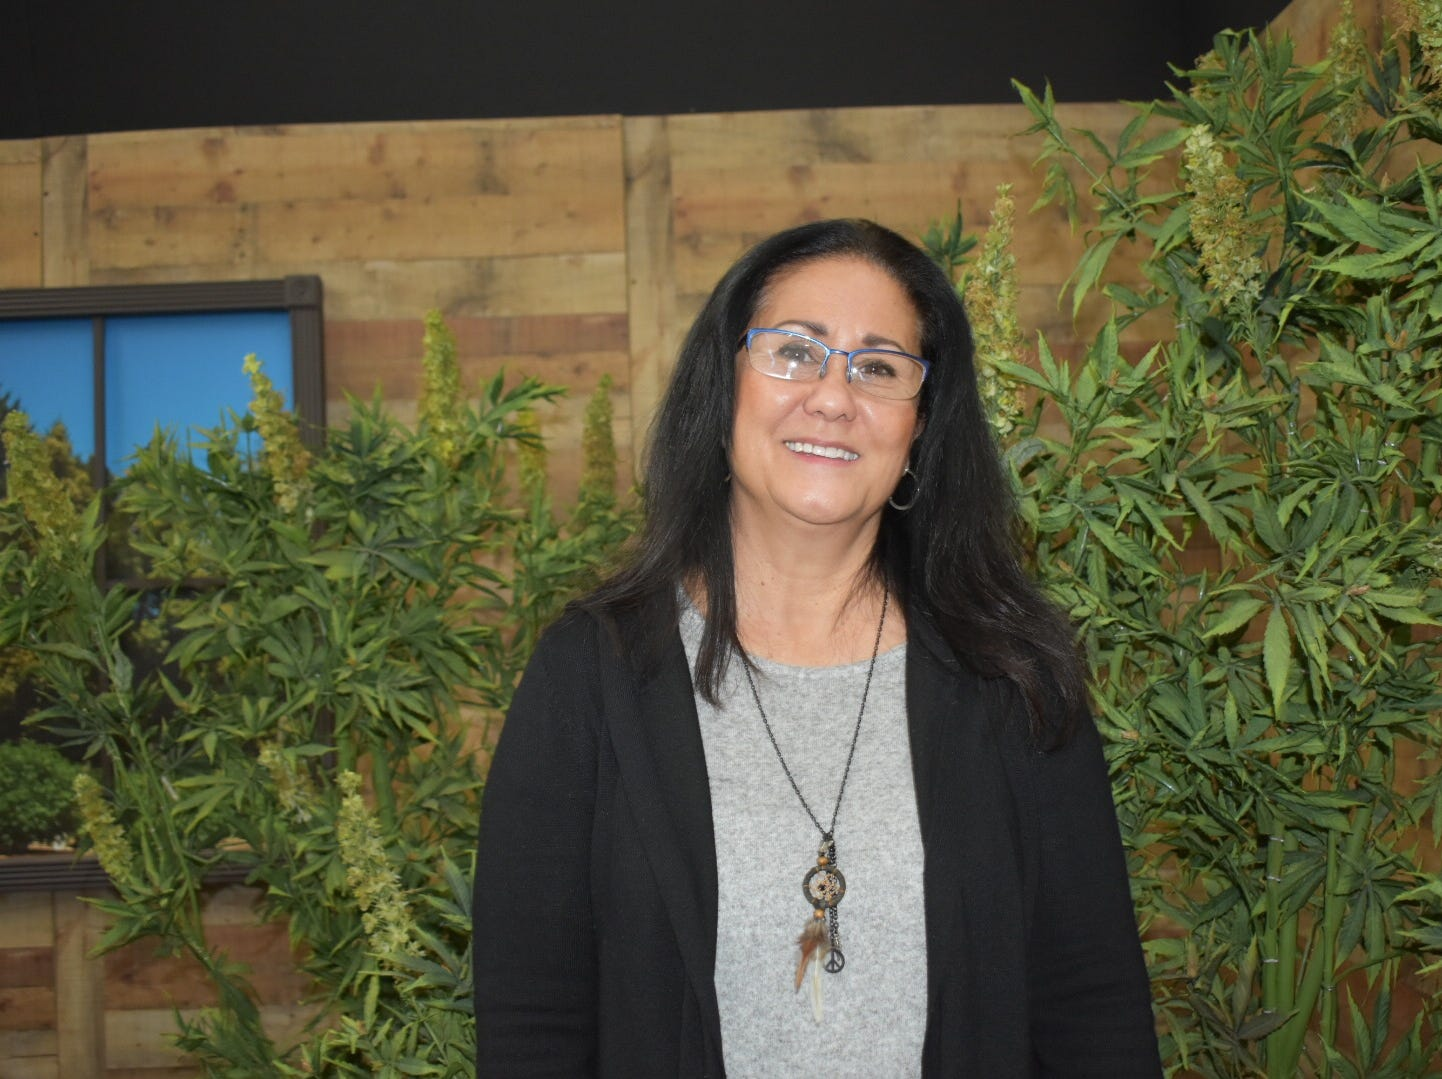 Stephanie Graziano spent 33 years in children's television and is now chief operations officer for cannabis education company, Green Flower.